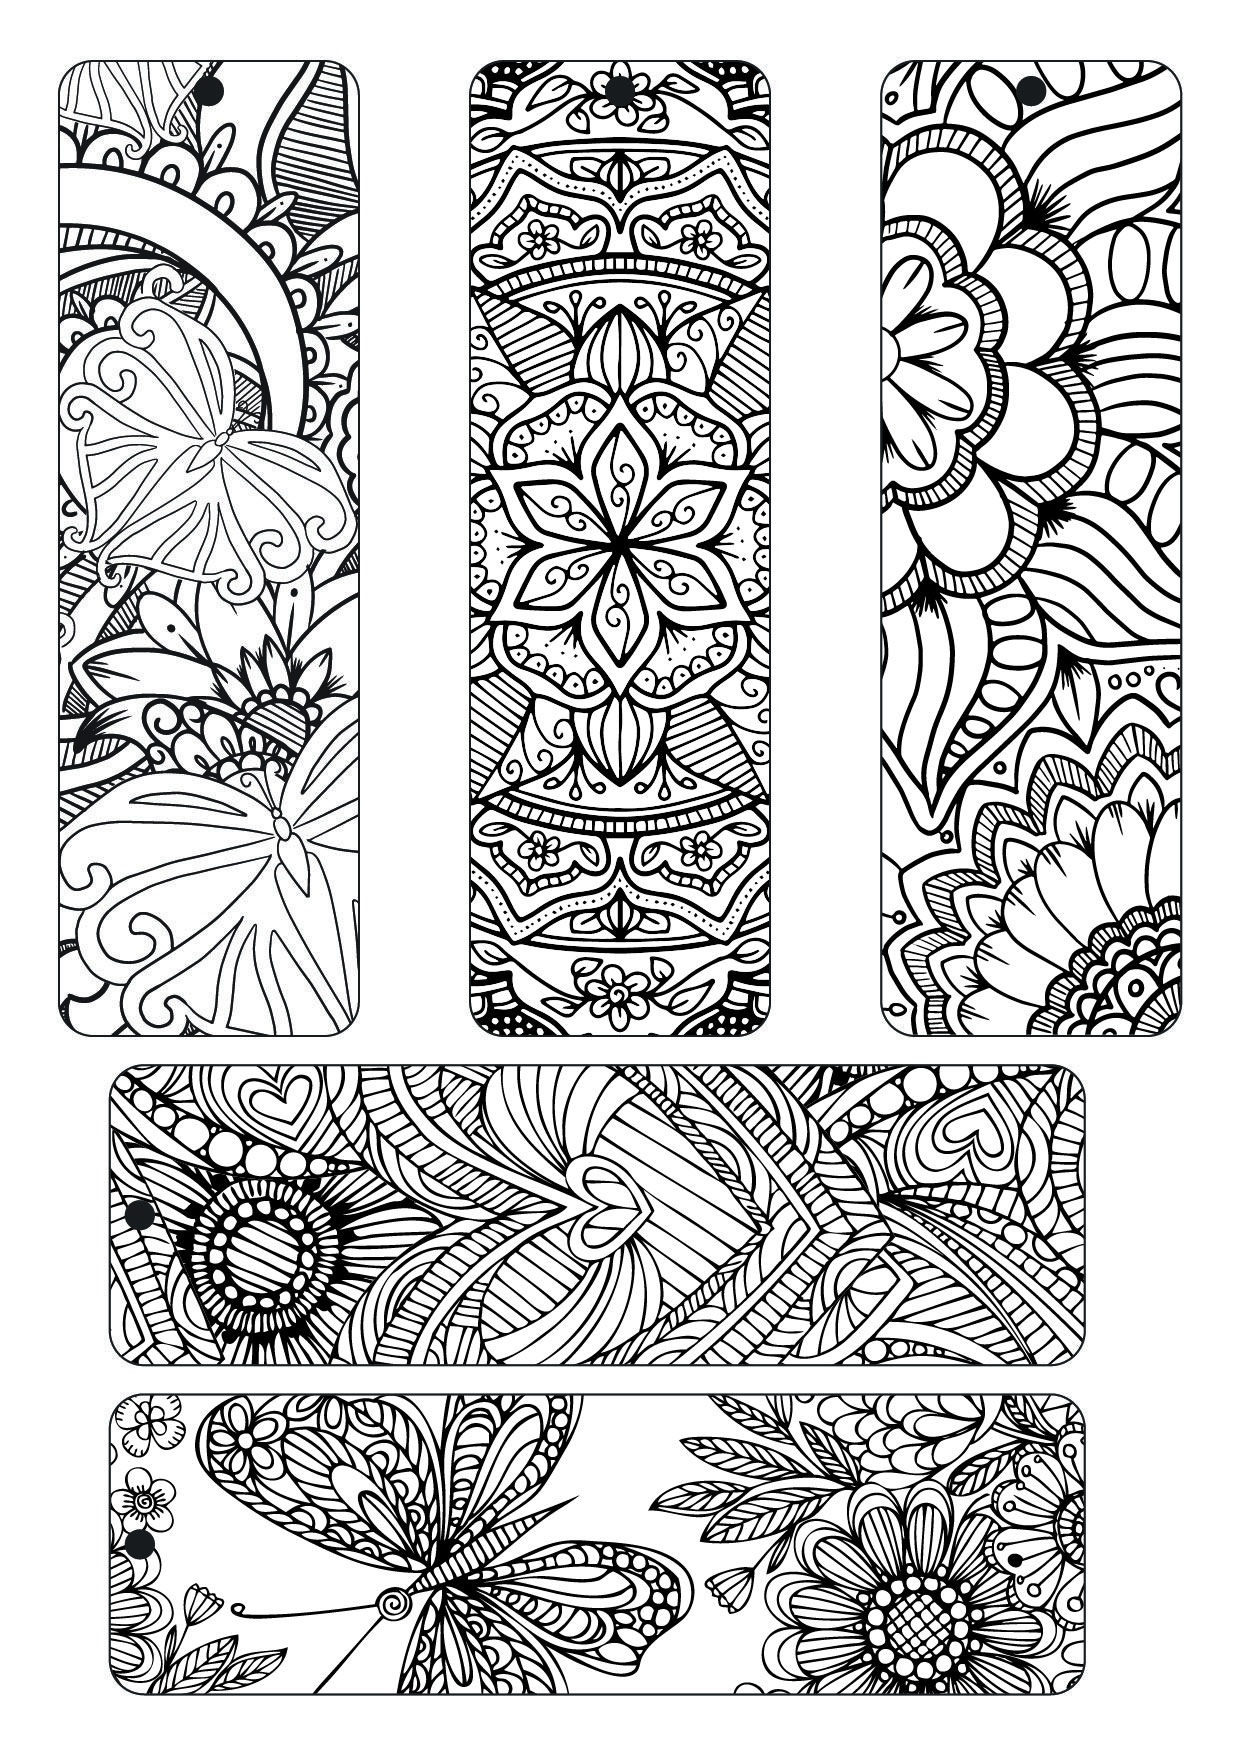 Free Coloring Plate Adult With Spectrum Noir | Paper Crafts - Free Printable Bookmarks To Color